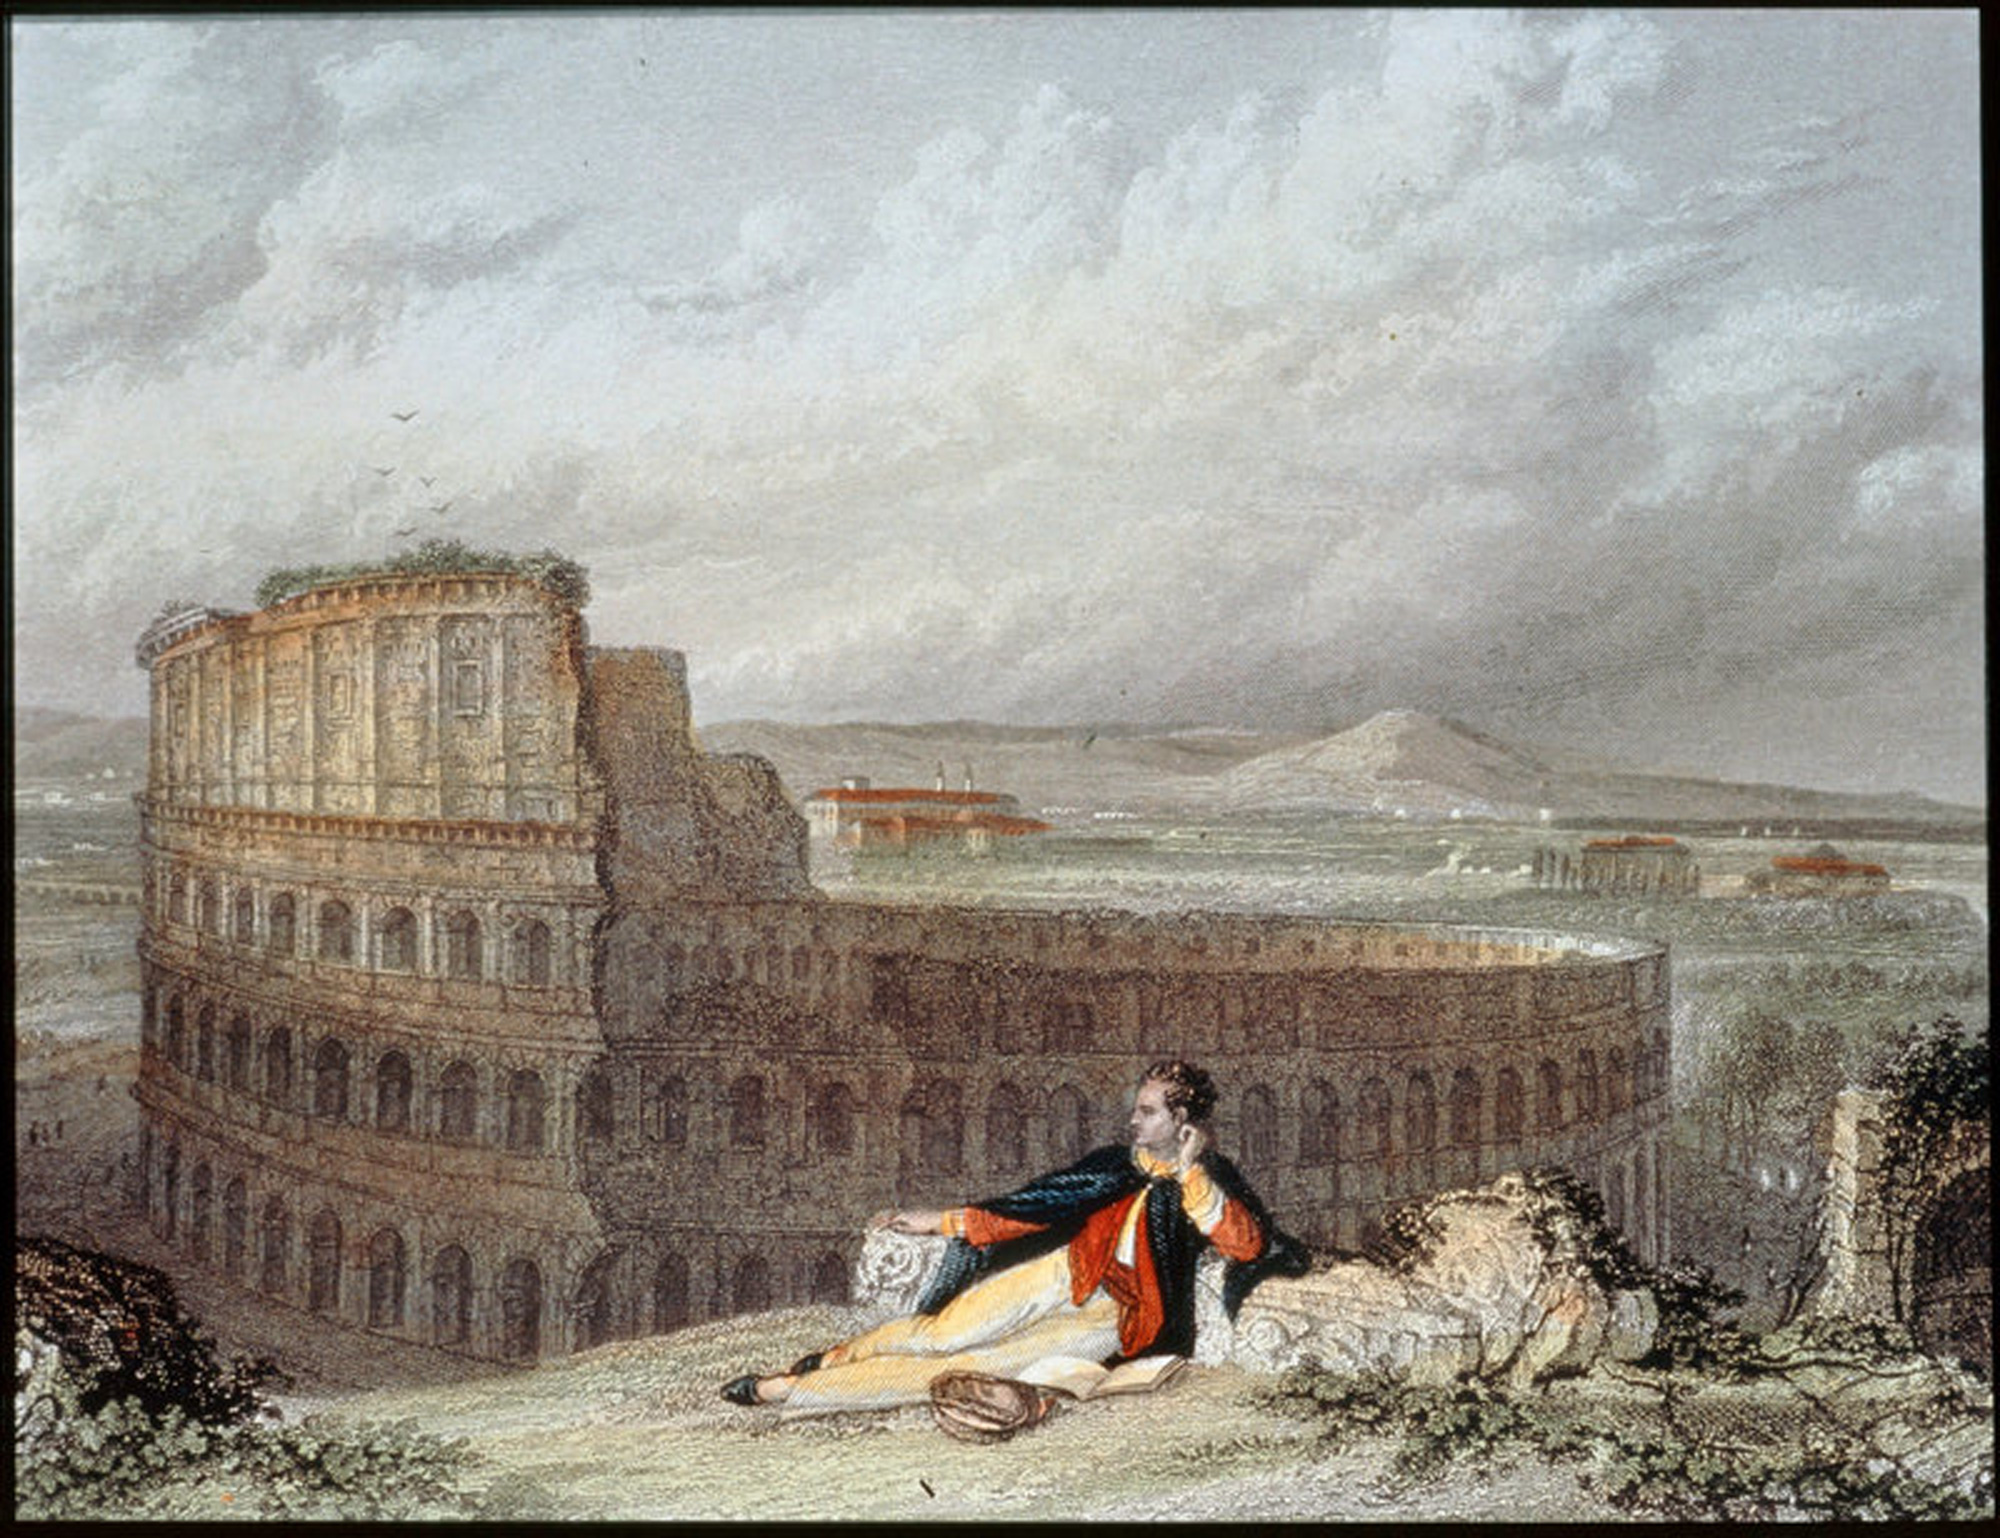 Lord George Byron contemplating the Colosseum in Rome